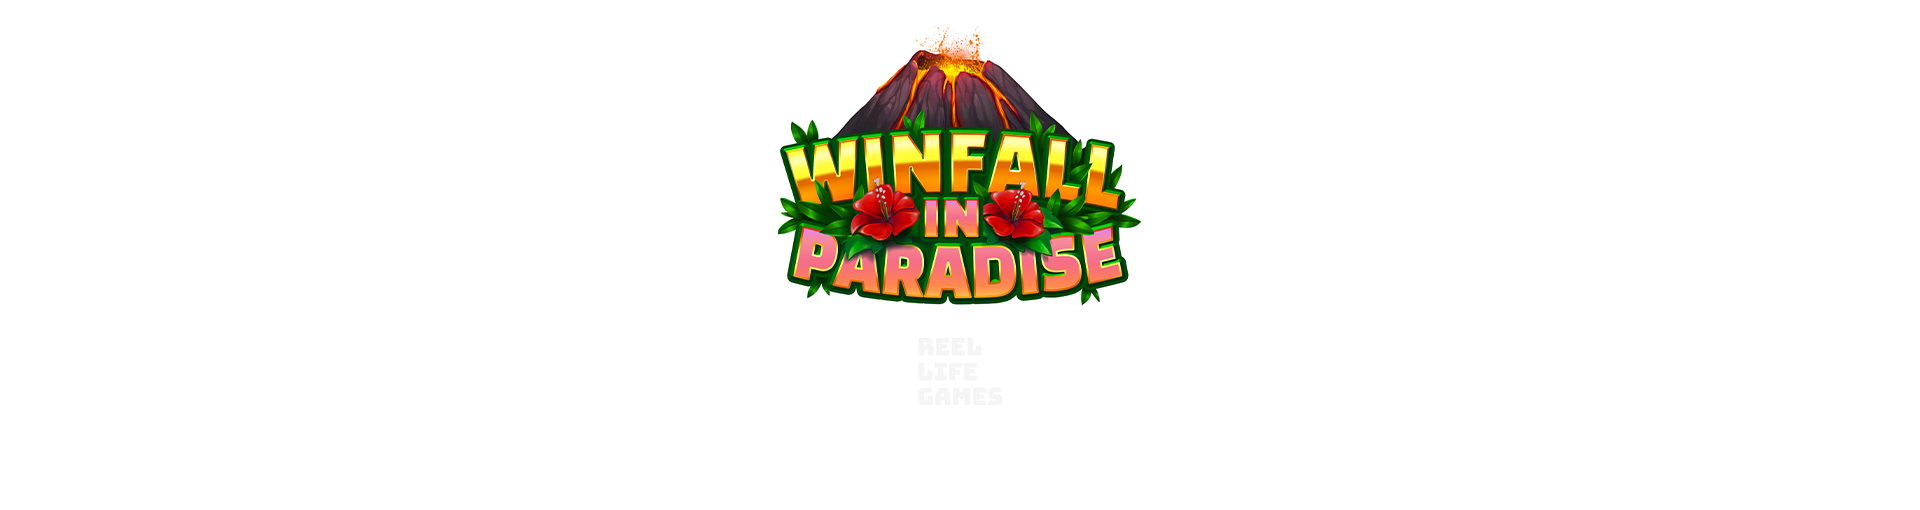 winfall_in_paradise_Yggdrasil-UpcomingGame-Logo-Template-1920x510px